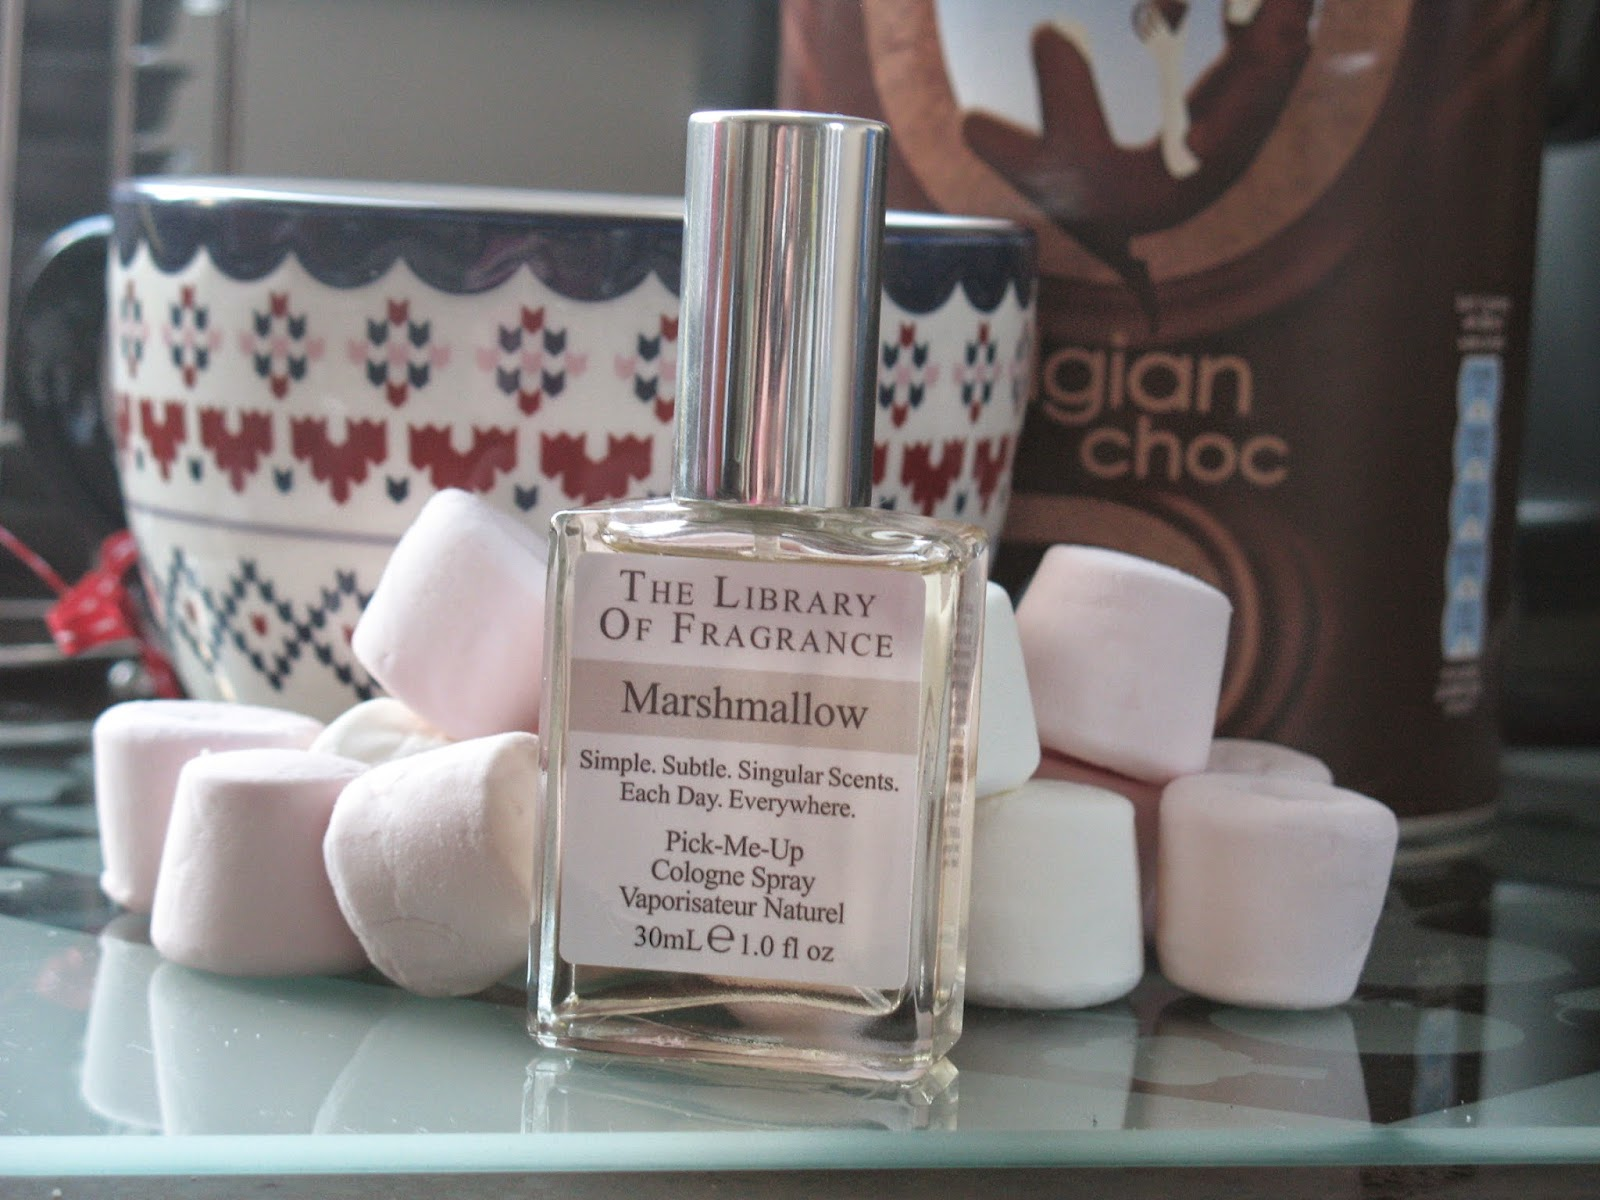 The Library of Fragrance Marshmallow Perfume